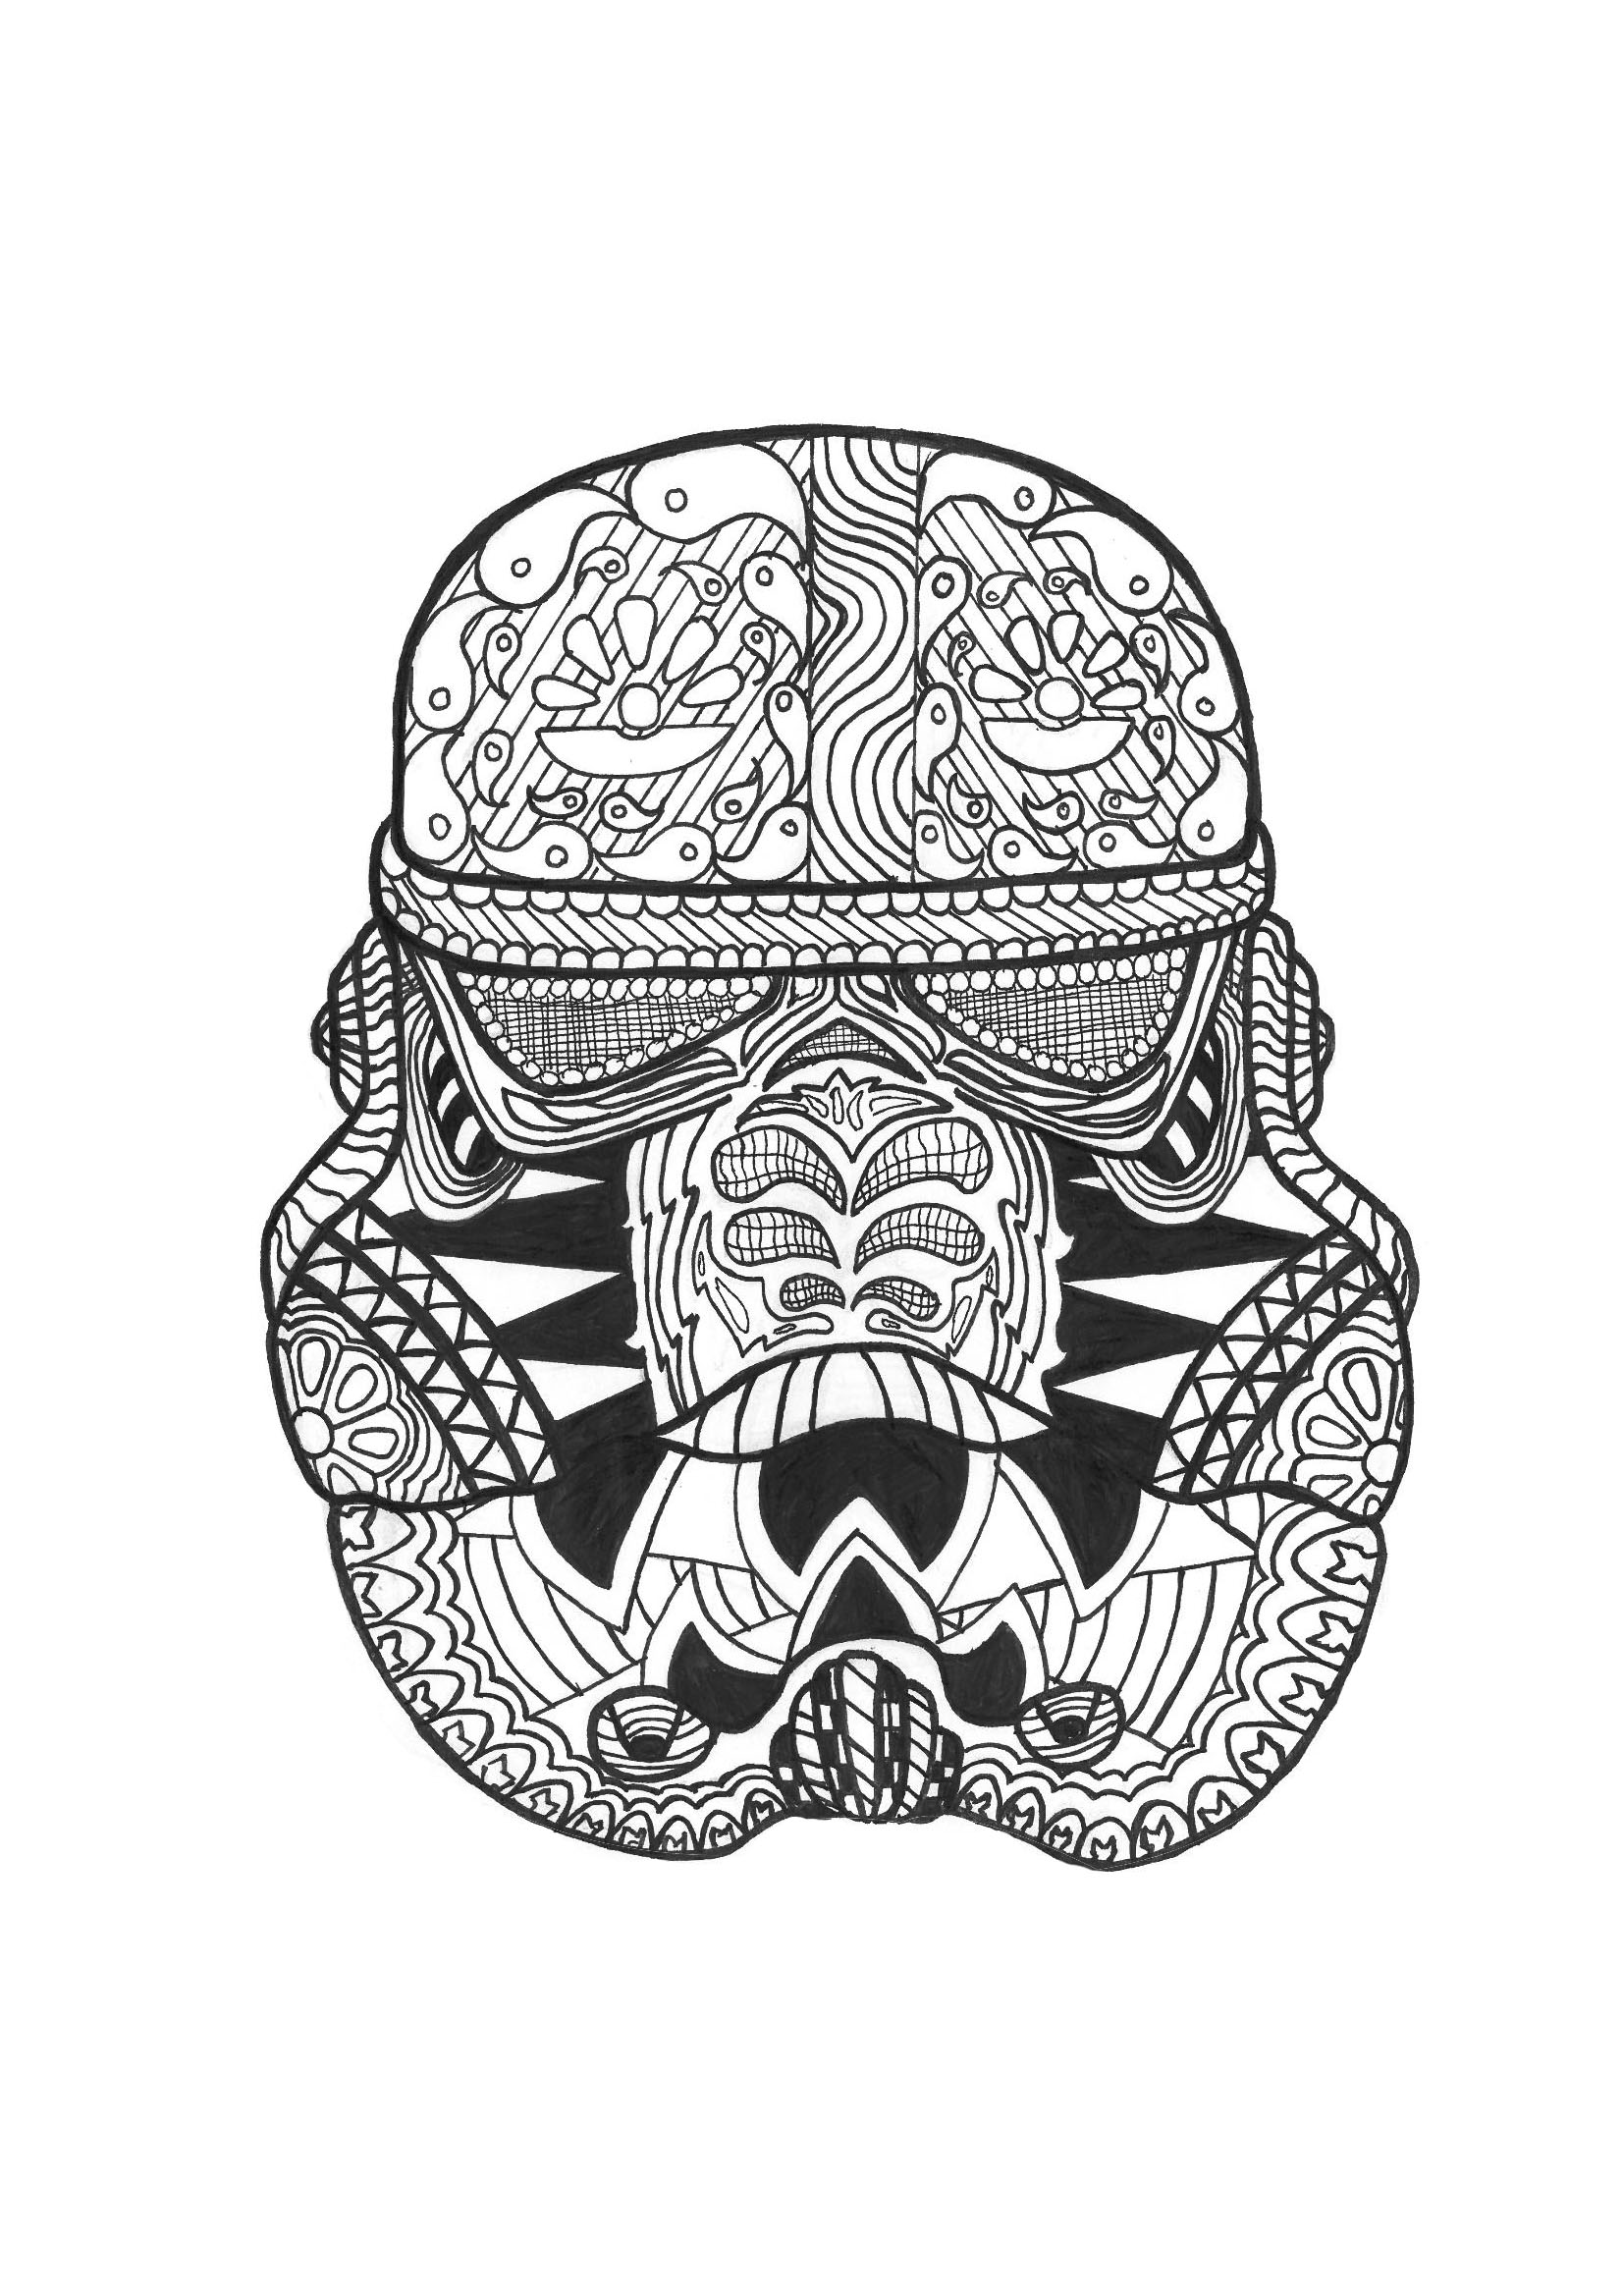 Coloring pictures for adults - A Stormtrooper S Hamlet In A Zen Style Ready To Fight From The Gallery Zen